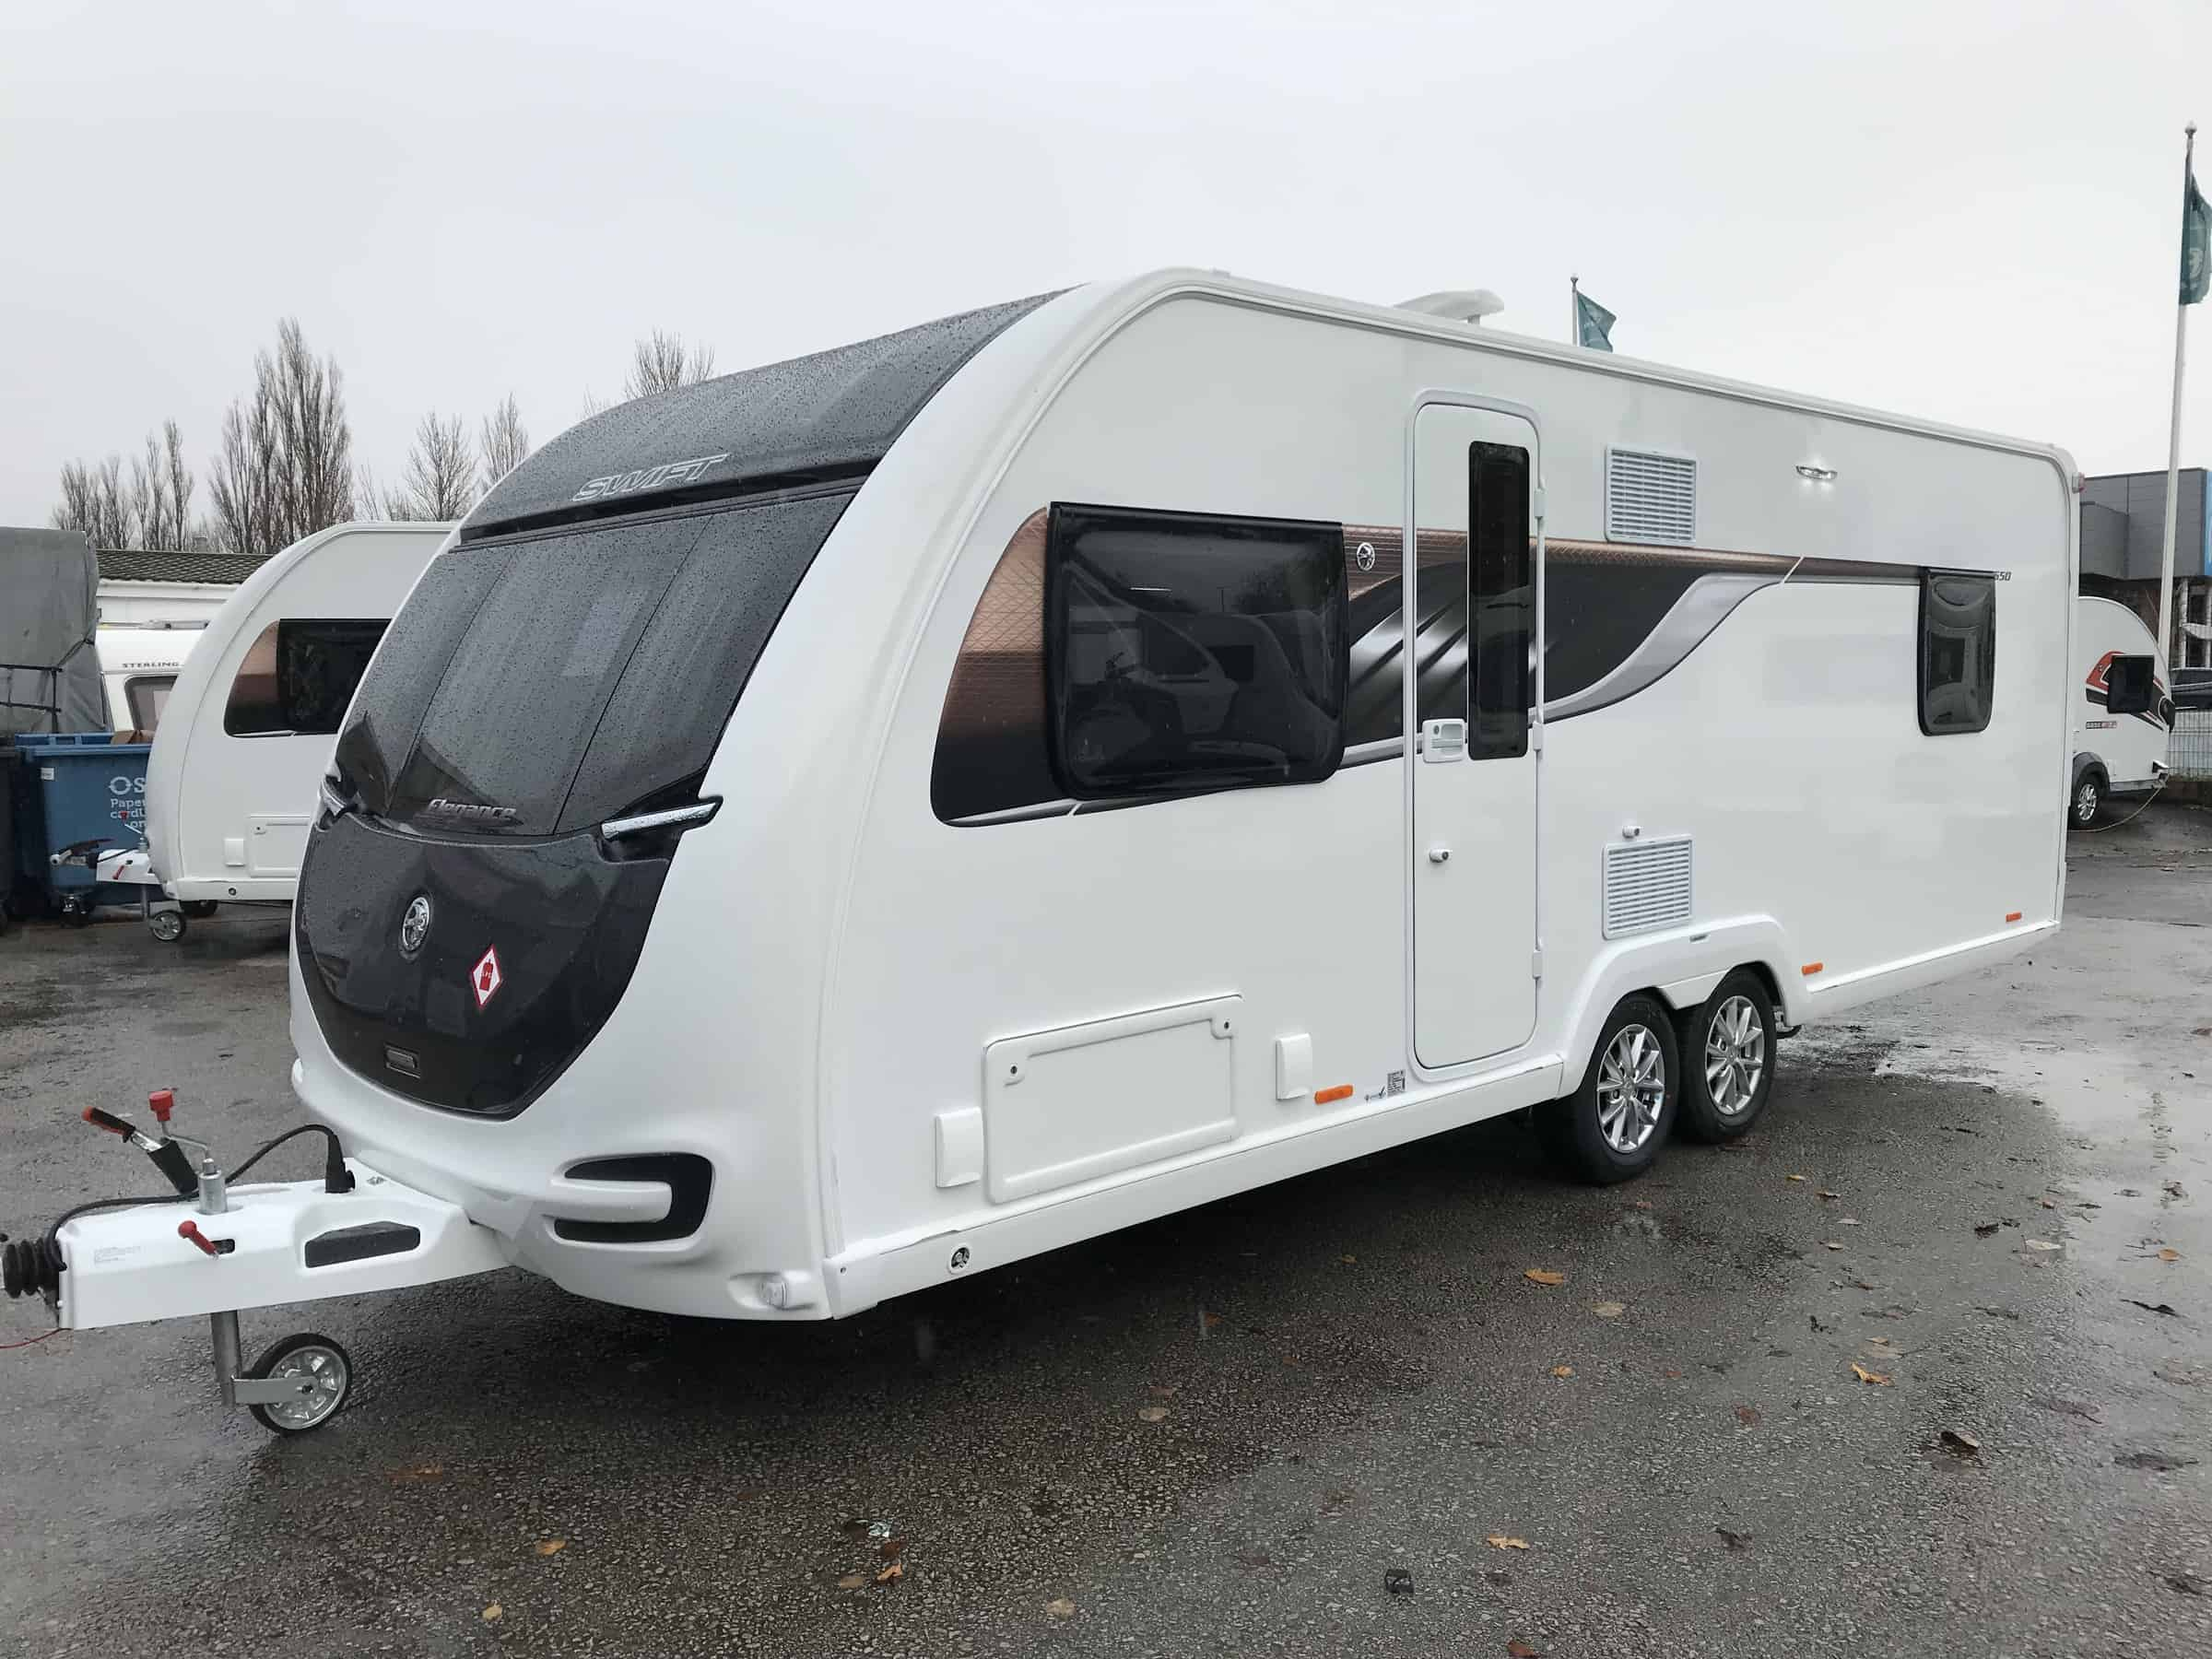 Swift Elegance 650 2019 4 berth fixed double rear beds REDUCED DOWN TO £27995